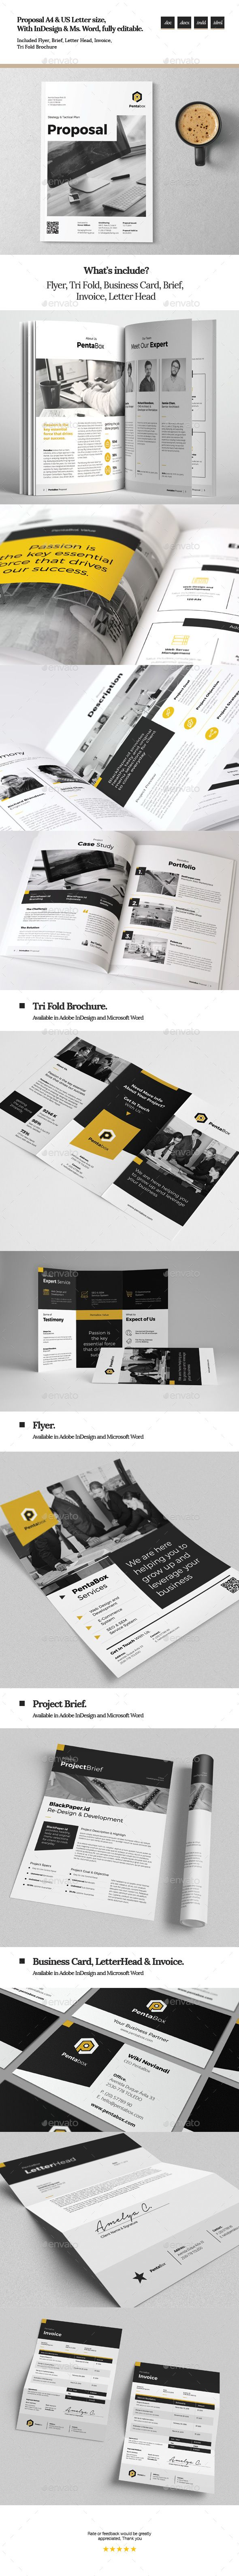 Proposal Template InDesign INDD, MS Word. Download here: https://graphicriver.net/item/proposal-/17299265?ref=ksioks